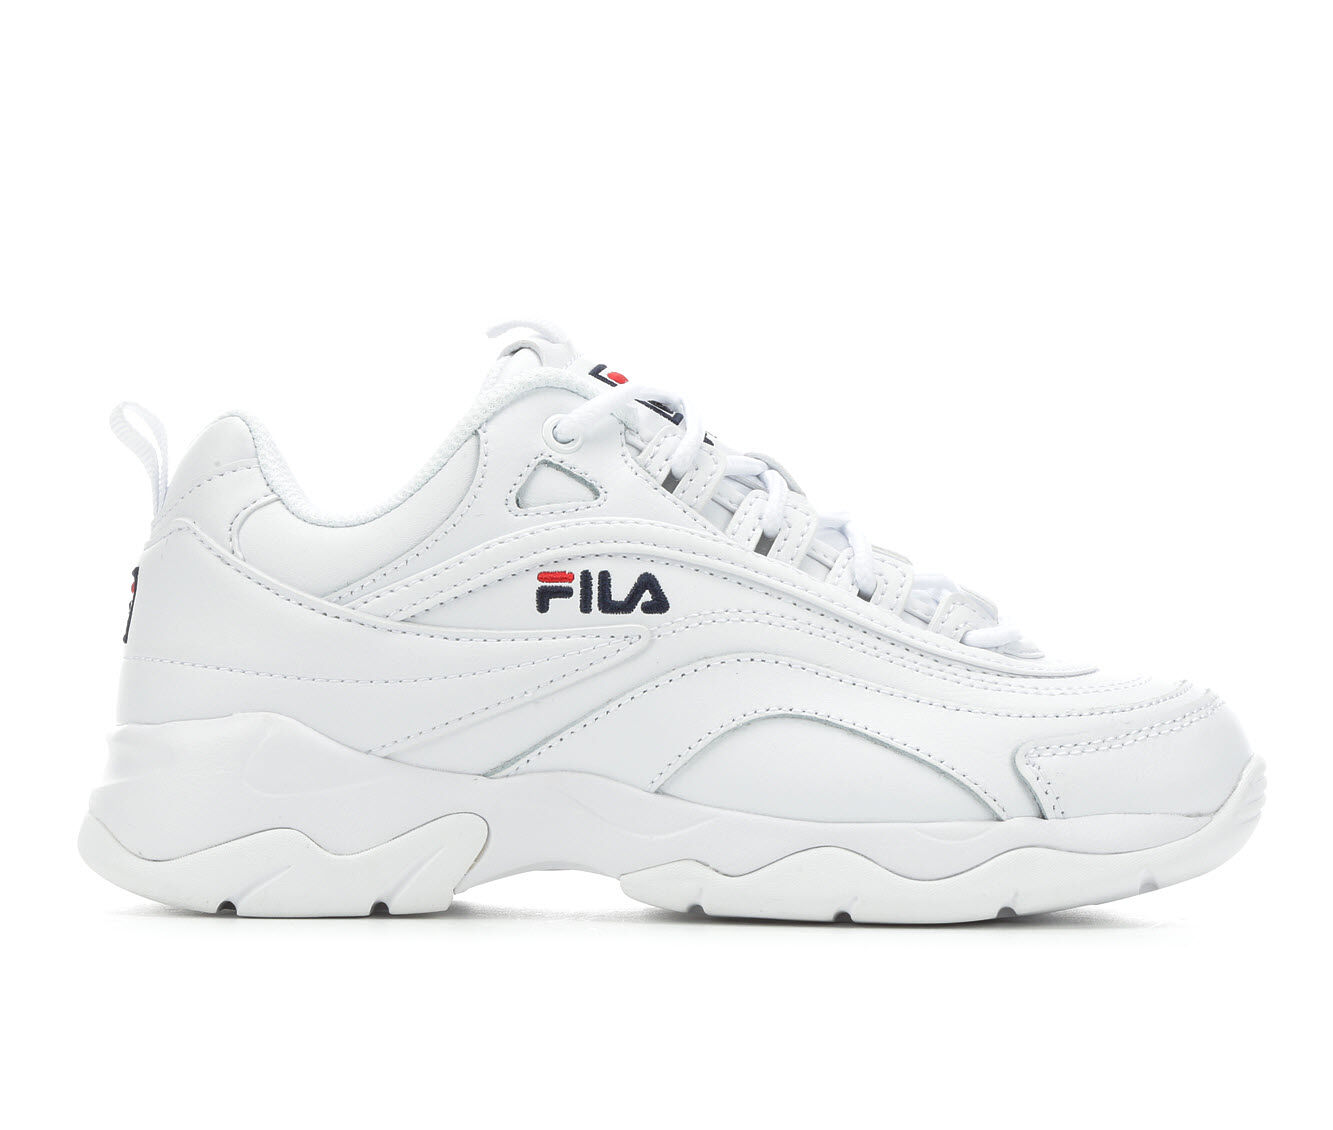 Fila Shoes: Disrupt the Routine with